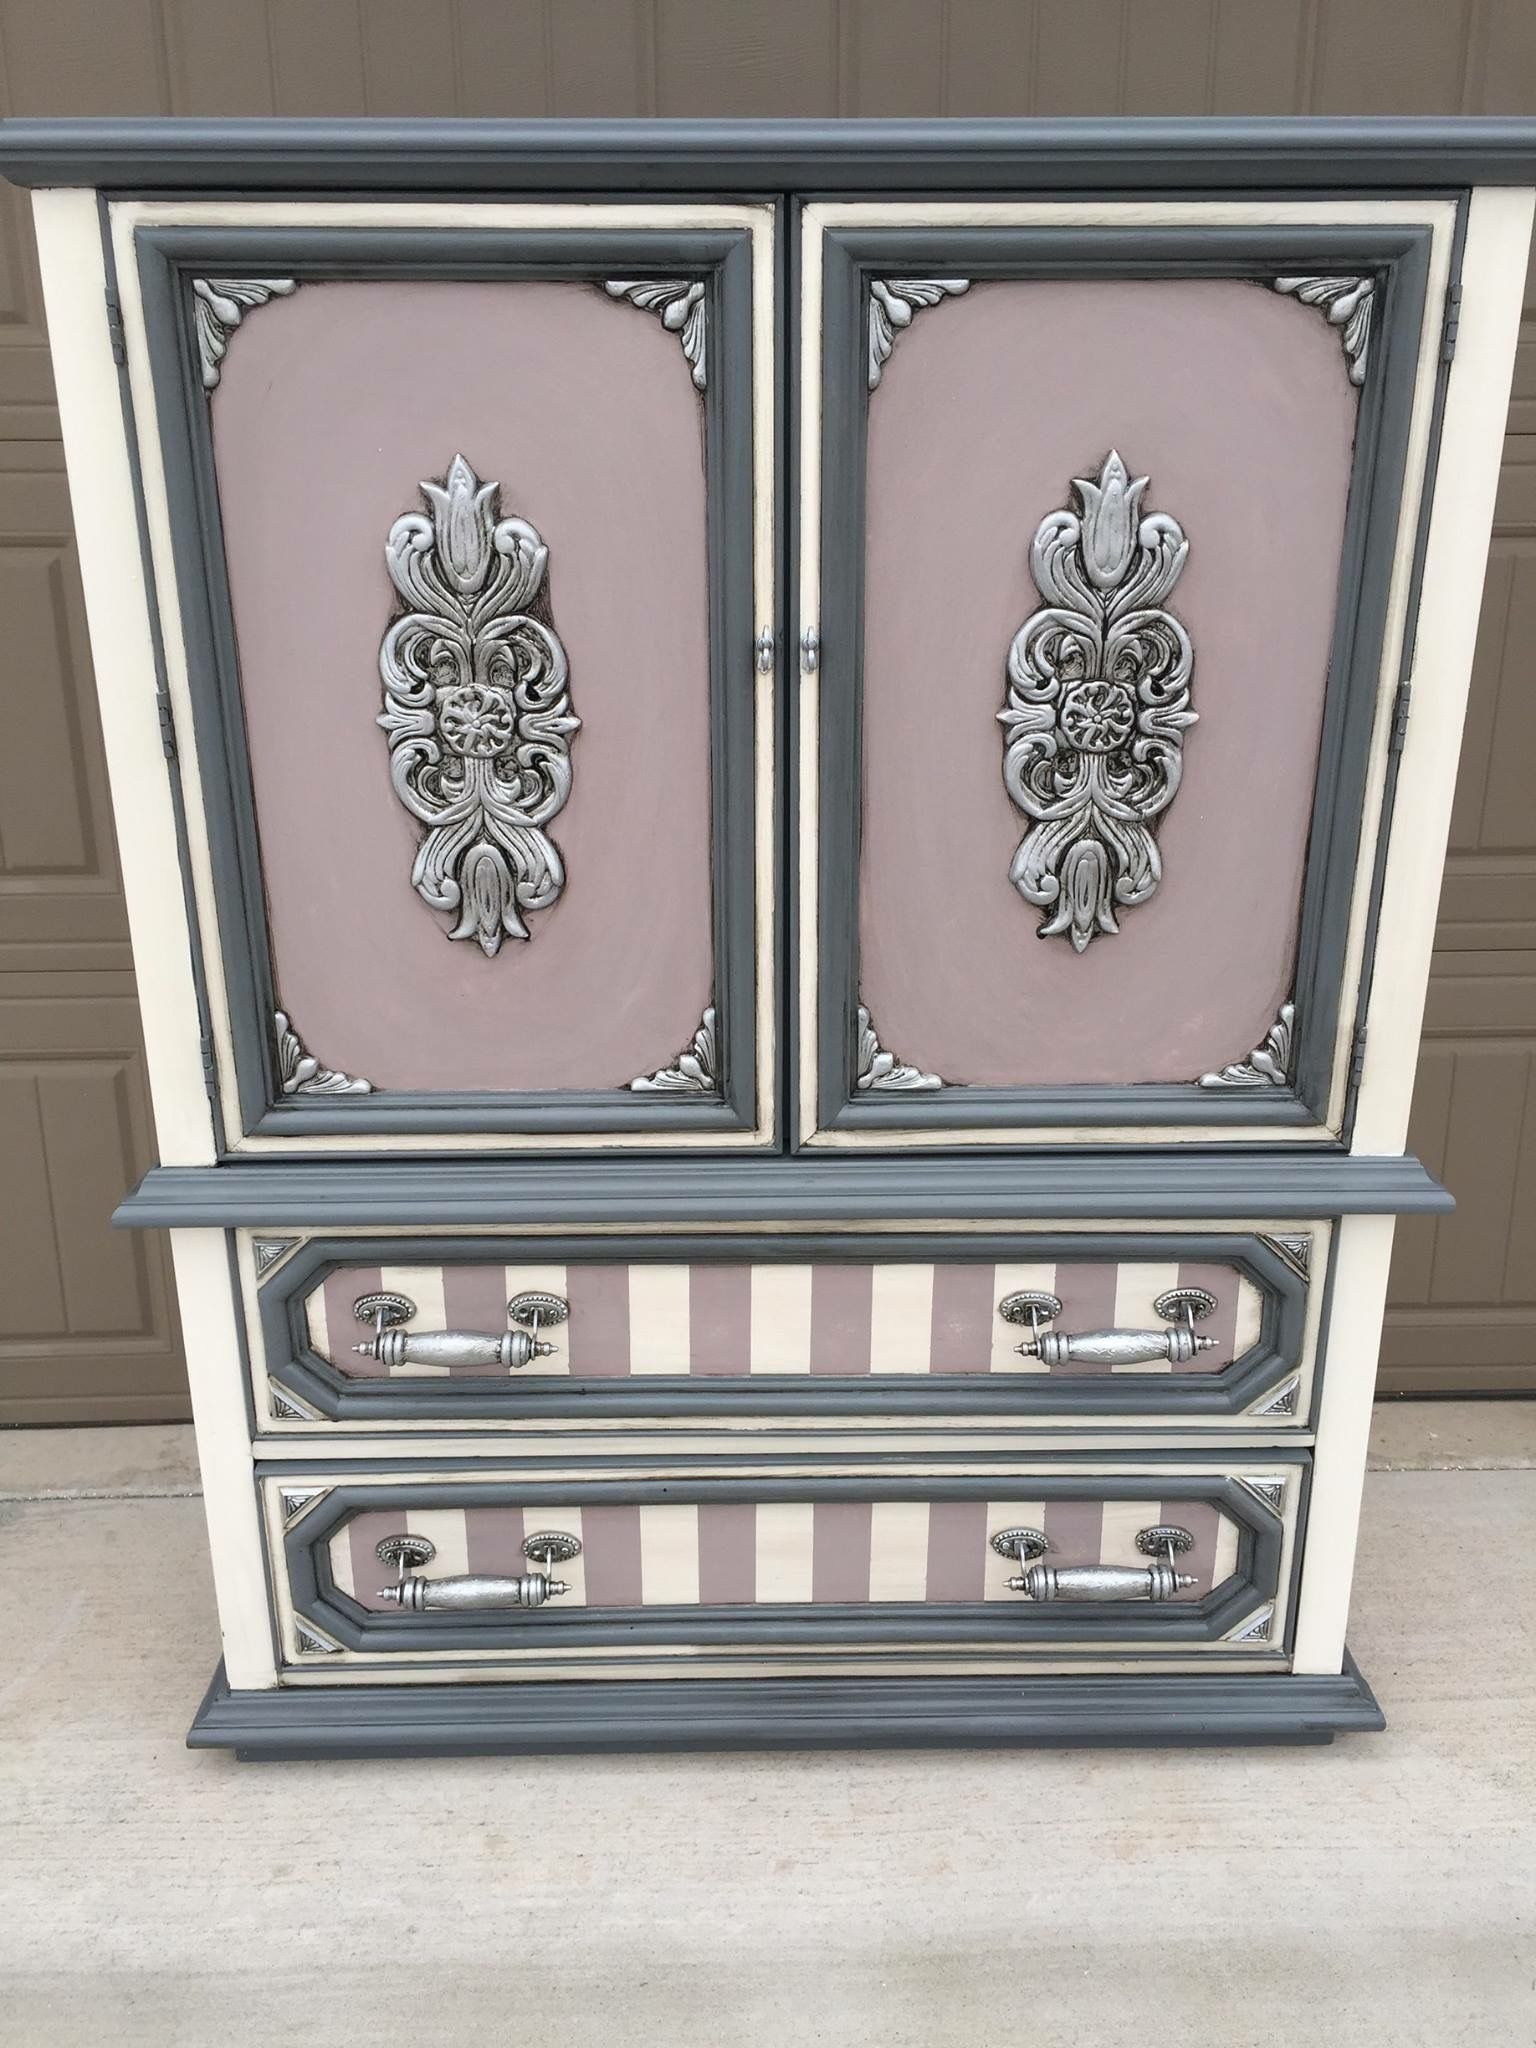 Pin By Audrey Limoges On Fit For A Princess Funky Home Decor Funky Painted Furniture Shabby Chic Furniture Diy